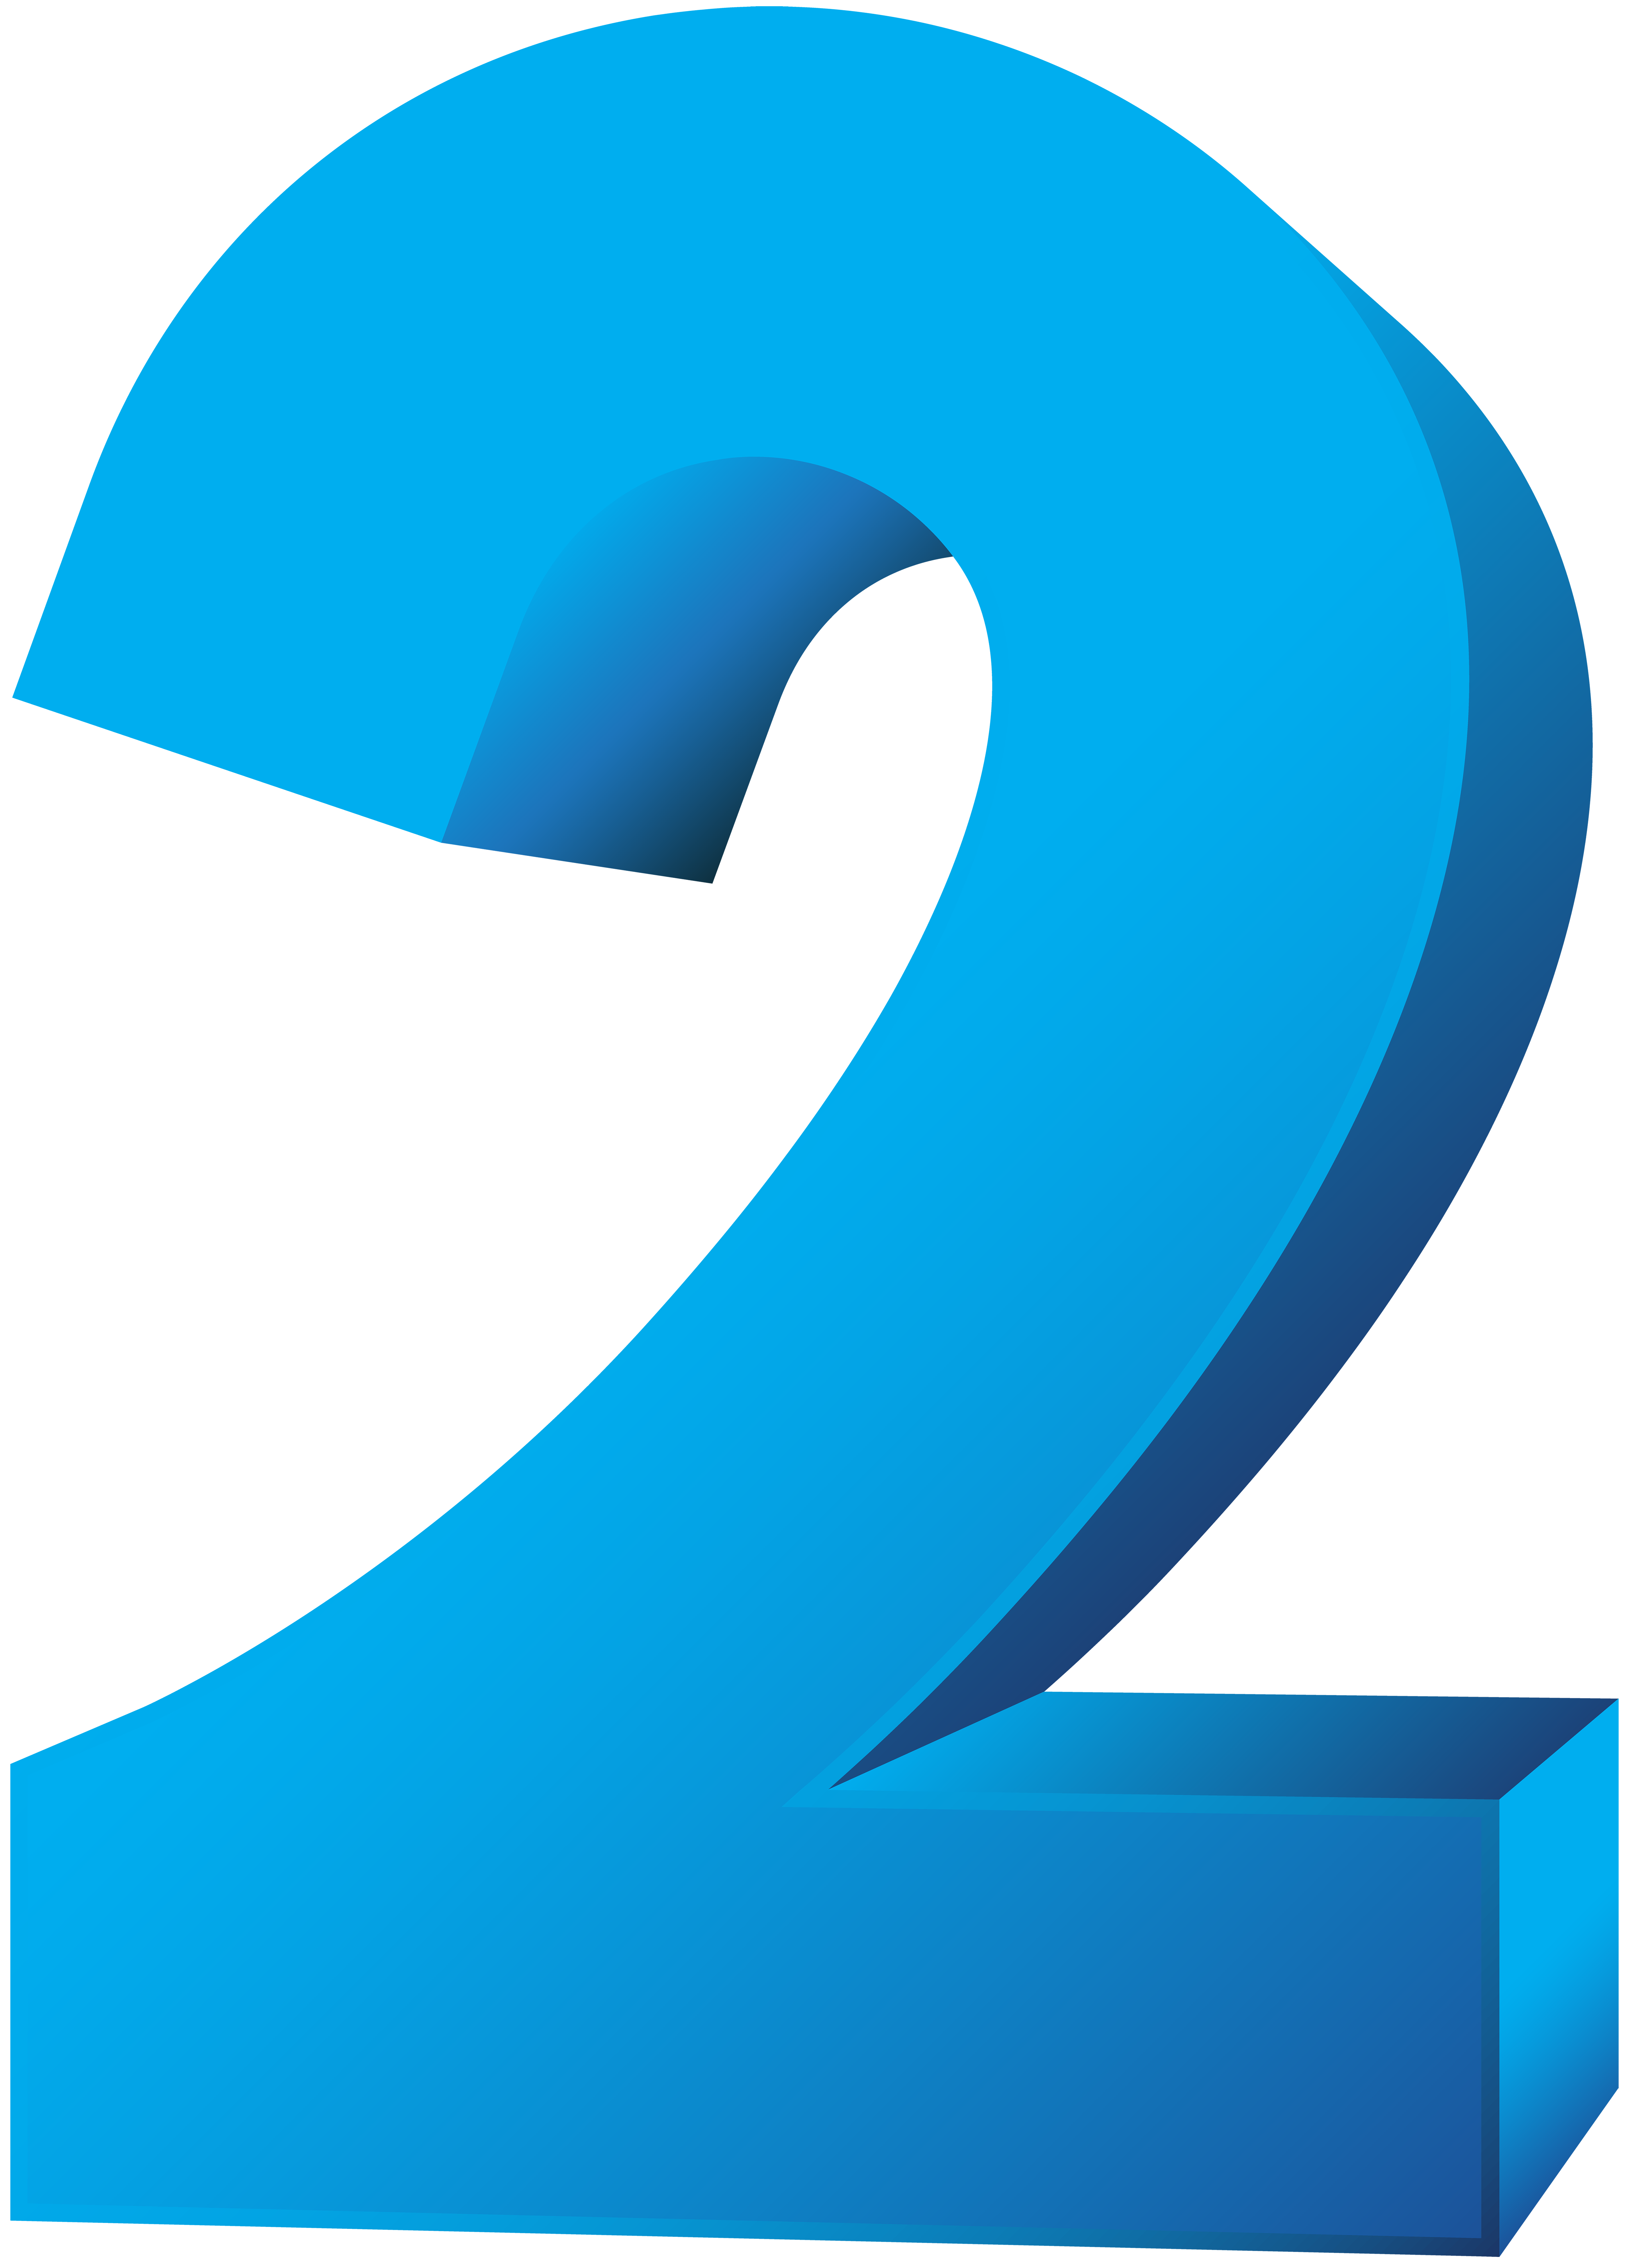 Number two clipart picture royalty free download Blue Number Two Transparent PNG Clip Art Image | Gallery ... picture royalty free download